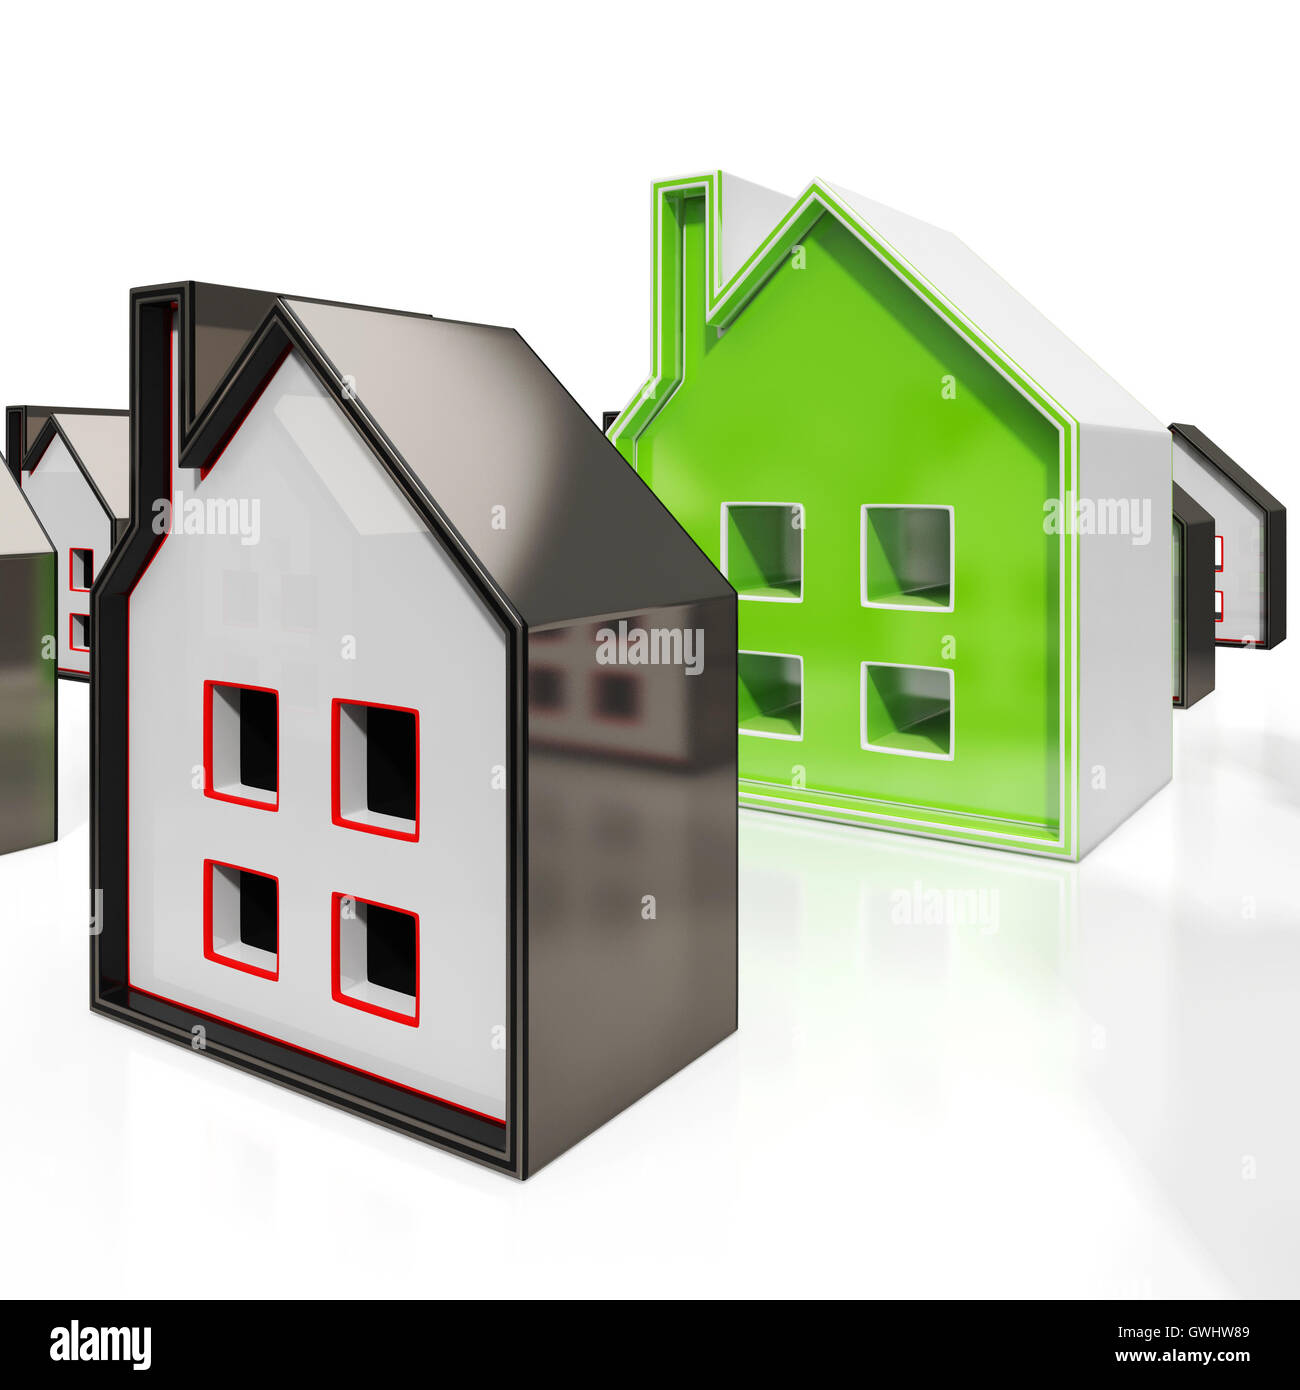 Selling Property Meaning Real Estate Stock Photos Selling Property